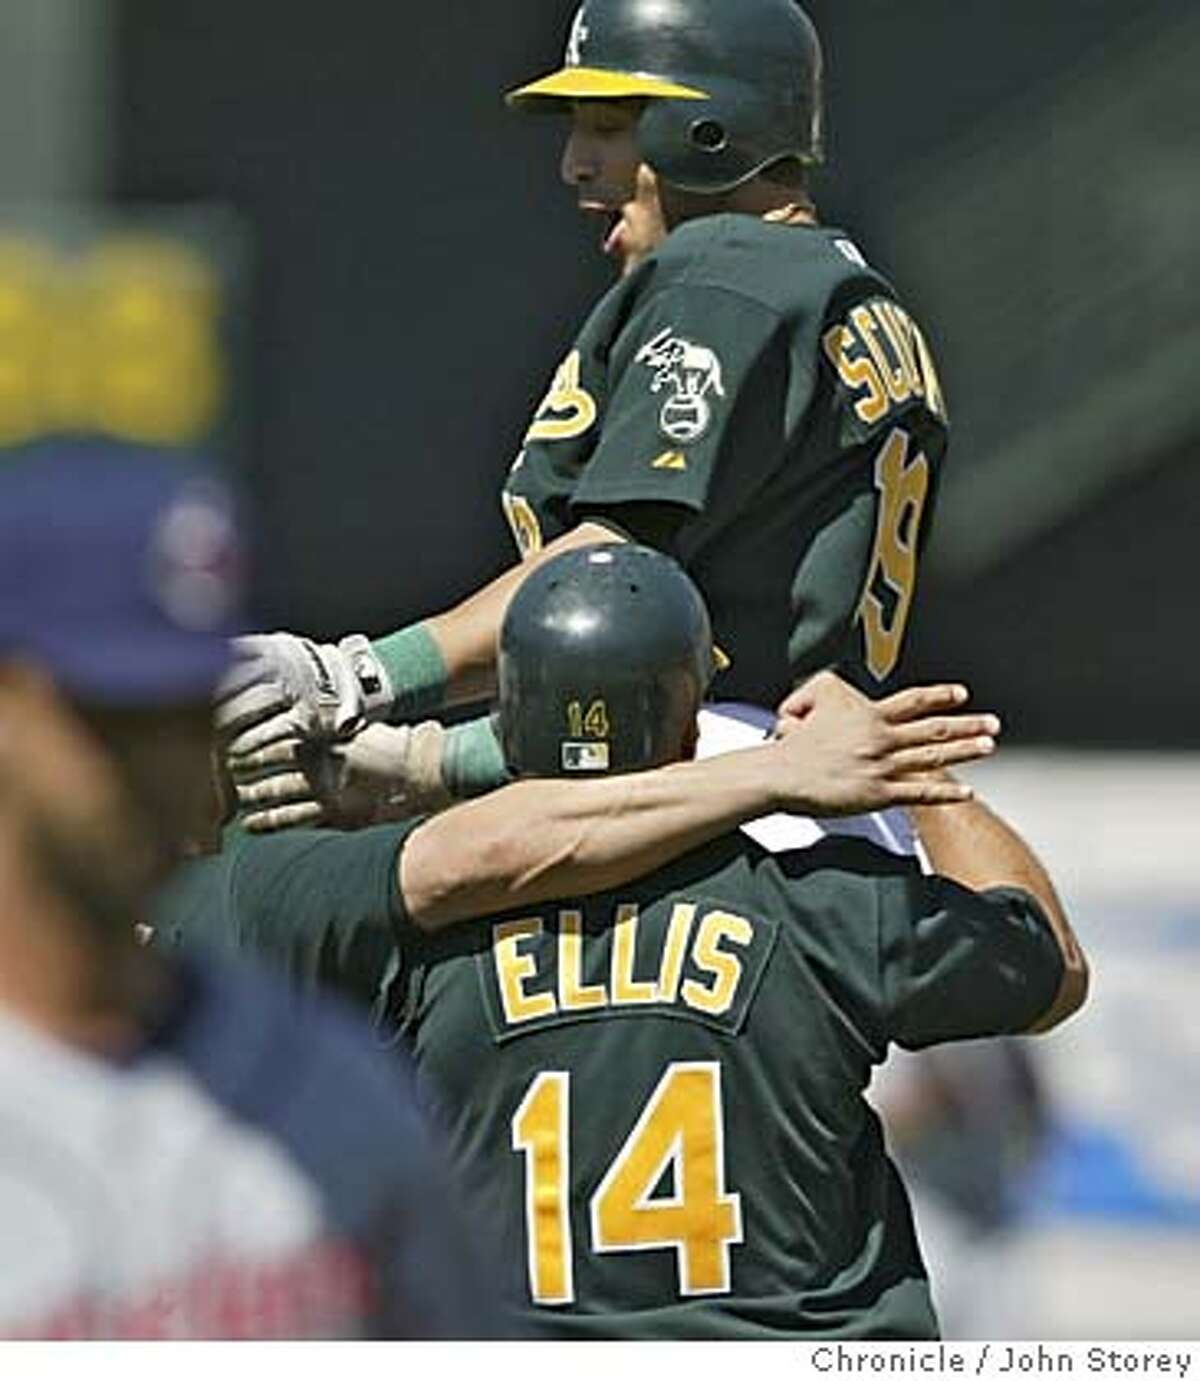 Marco Scutaro of the A's is hugged by Mark Ellis after he drove in the winning run in the 10th inning to beat the Indians. The Oakland A's beat the Cleveland Indians in 10 innings at the McAfee Coliseum. John Storey Oakland Event on 7/27/05 -